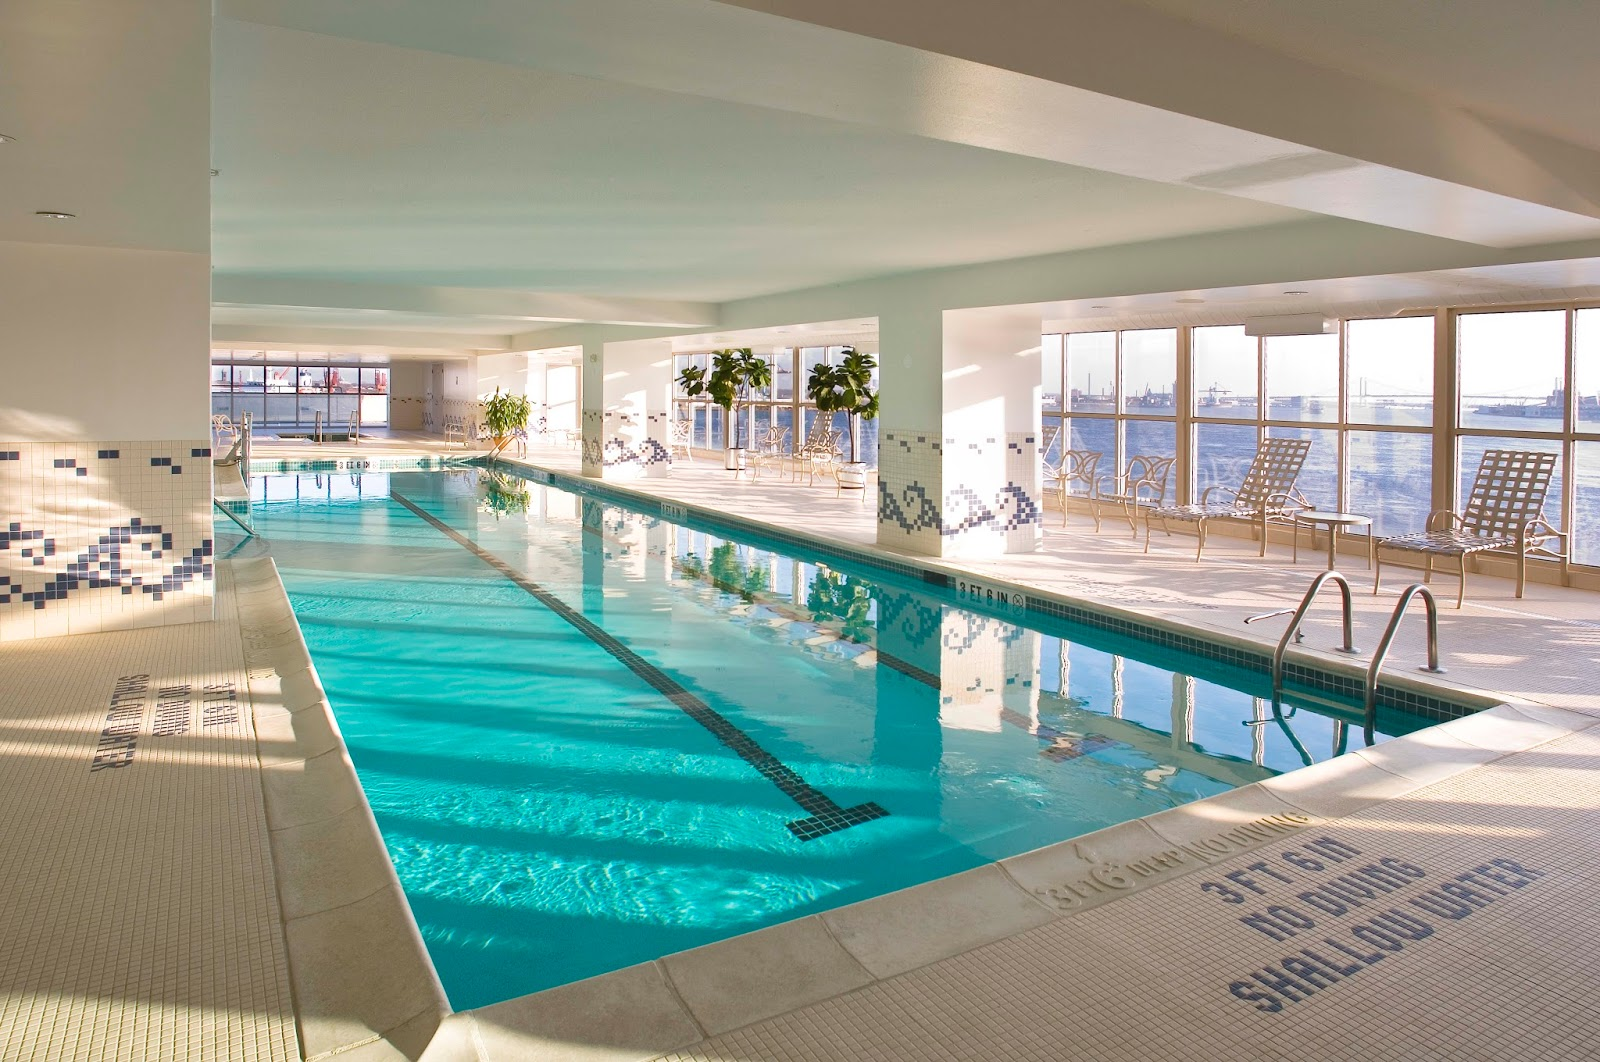 10 OF THE MOST AMAZING INDOOR SWIMMING POOLS Crack Two